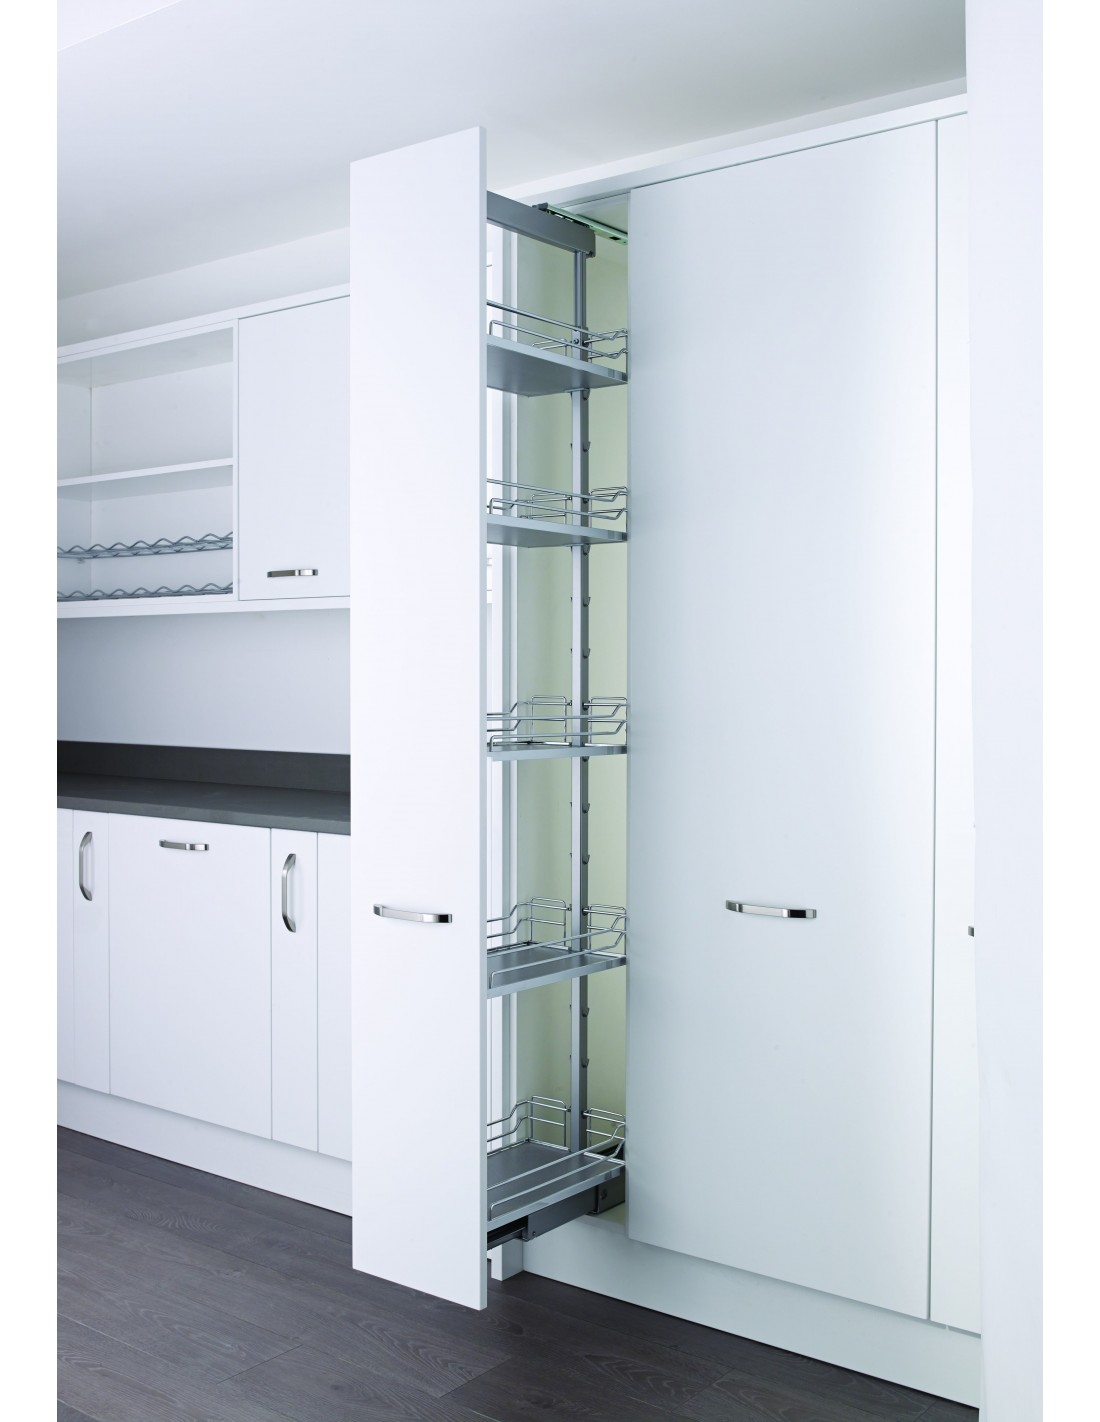 Kessebohmer kitchen storage for units east coast kitchens for Kitchen cabinets 500mm